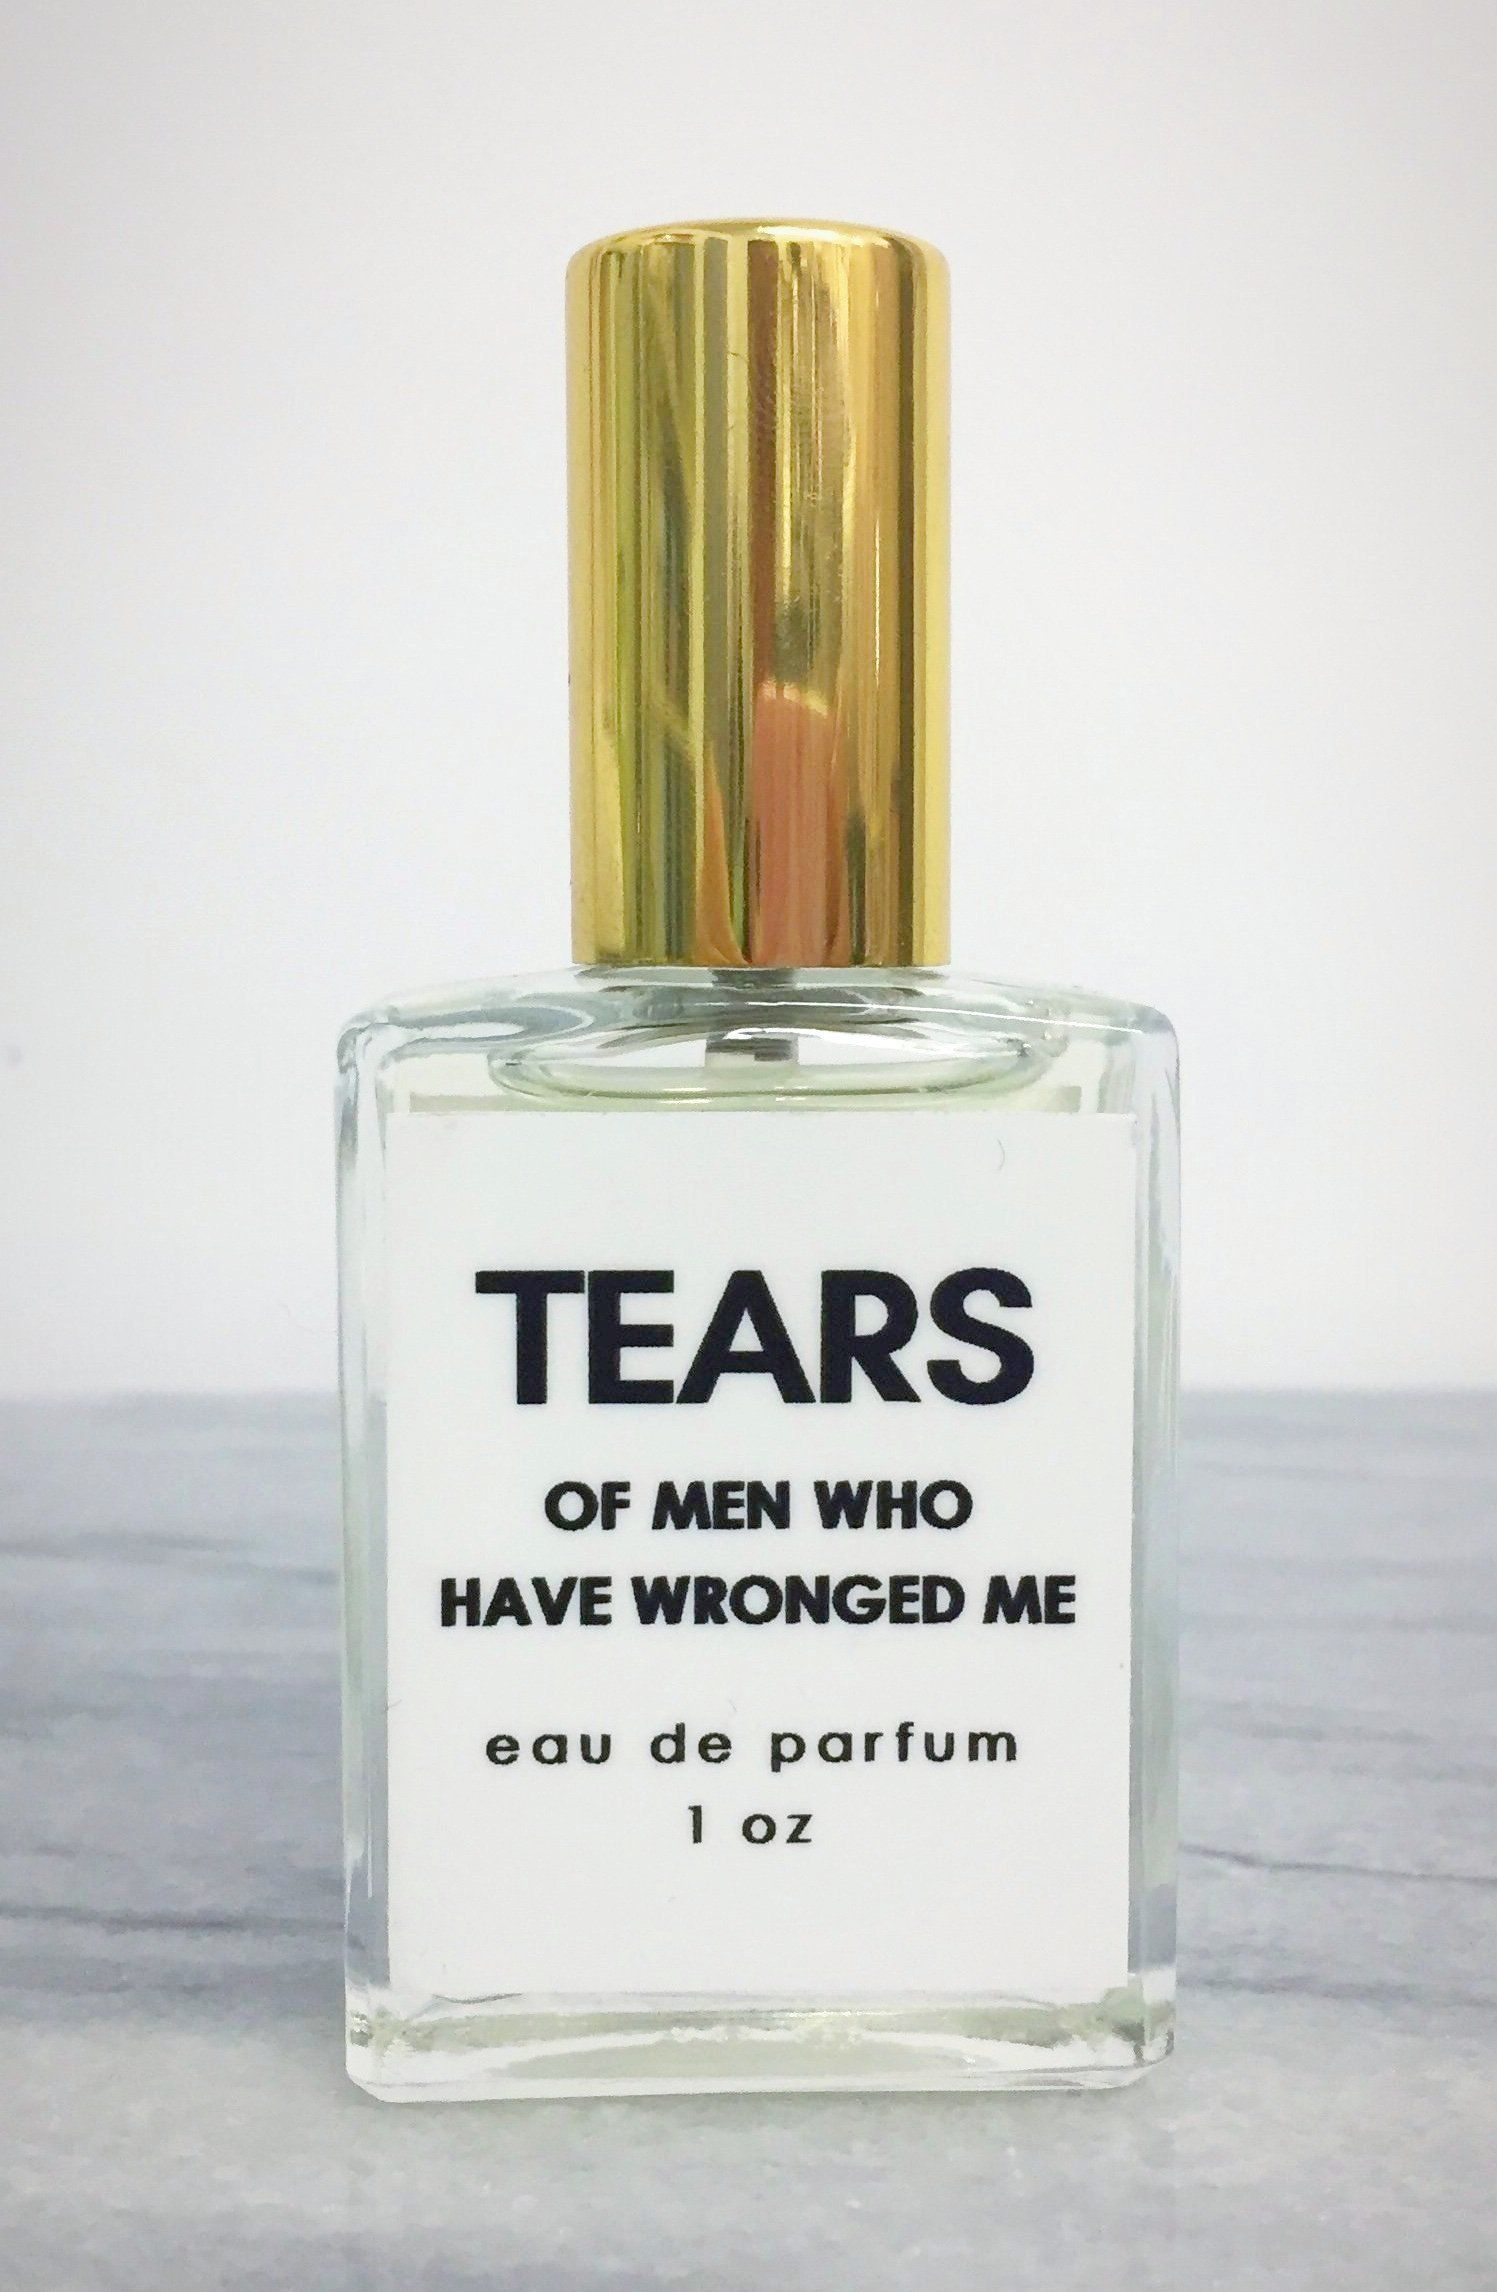 Wholesale Only Tears Of Men Who Have Wronged Me Perfume In Decorative Glass Spray Bottle Set Of 5 Bottles Glass Spray Bottle Perfume Spray Bottle